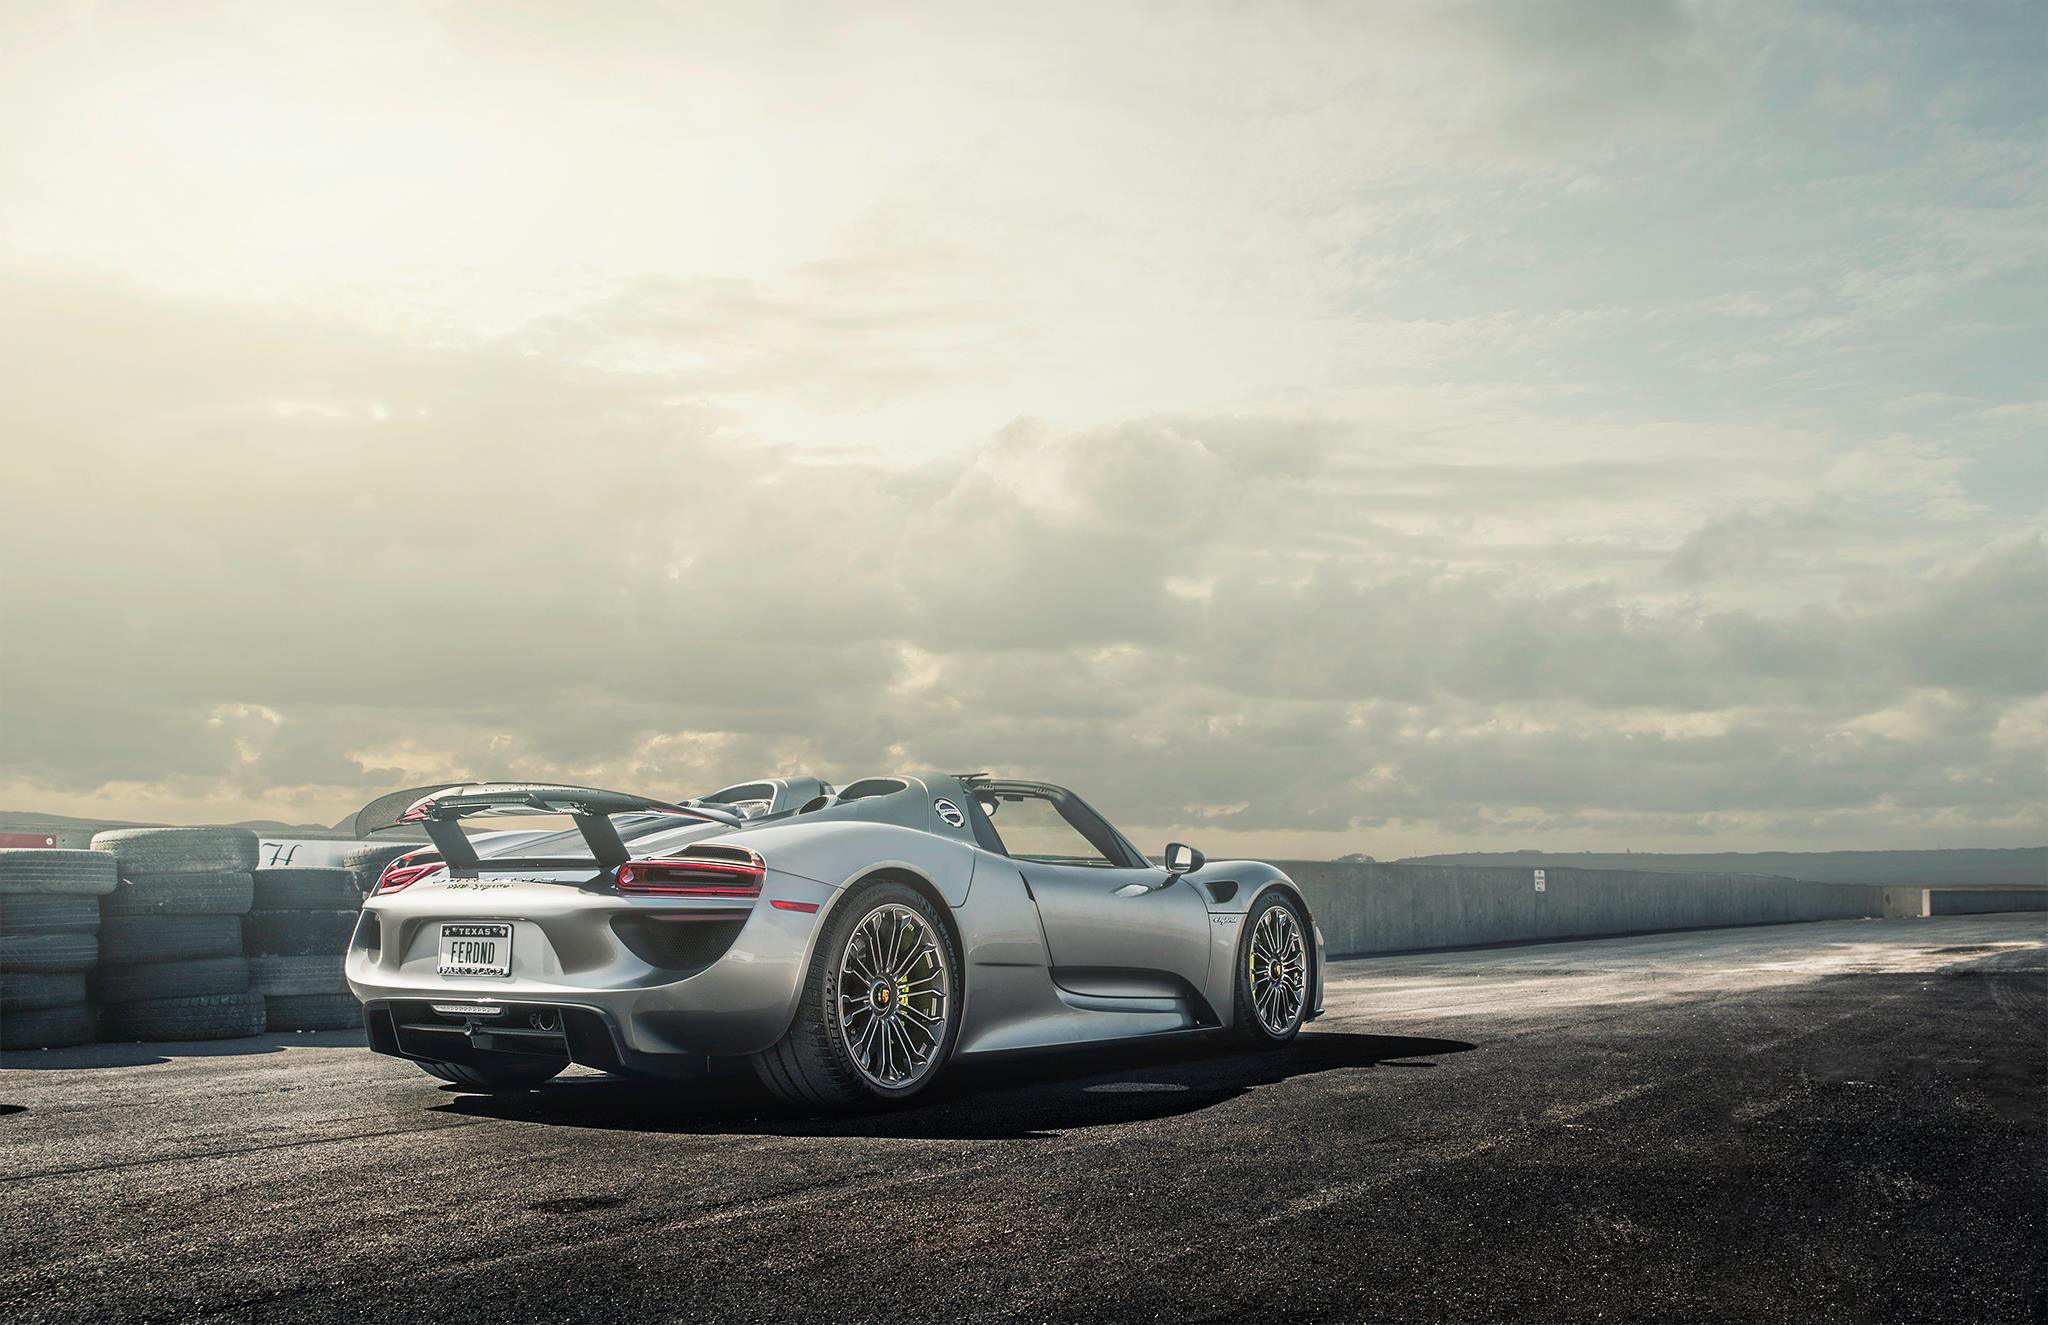 Porsche 918 Spyder Hd Wallpaper Background Image